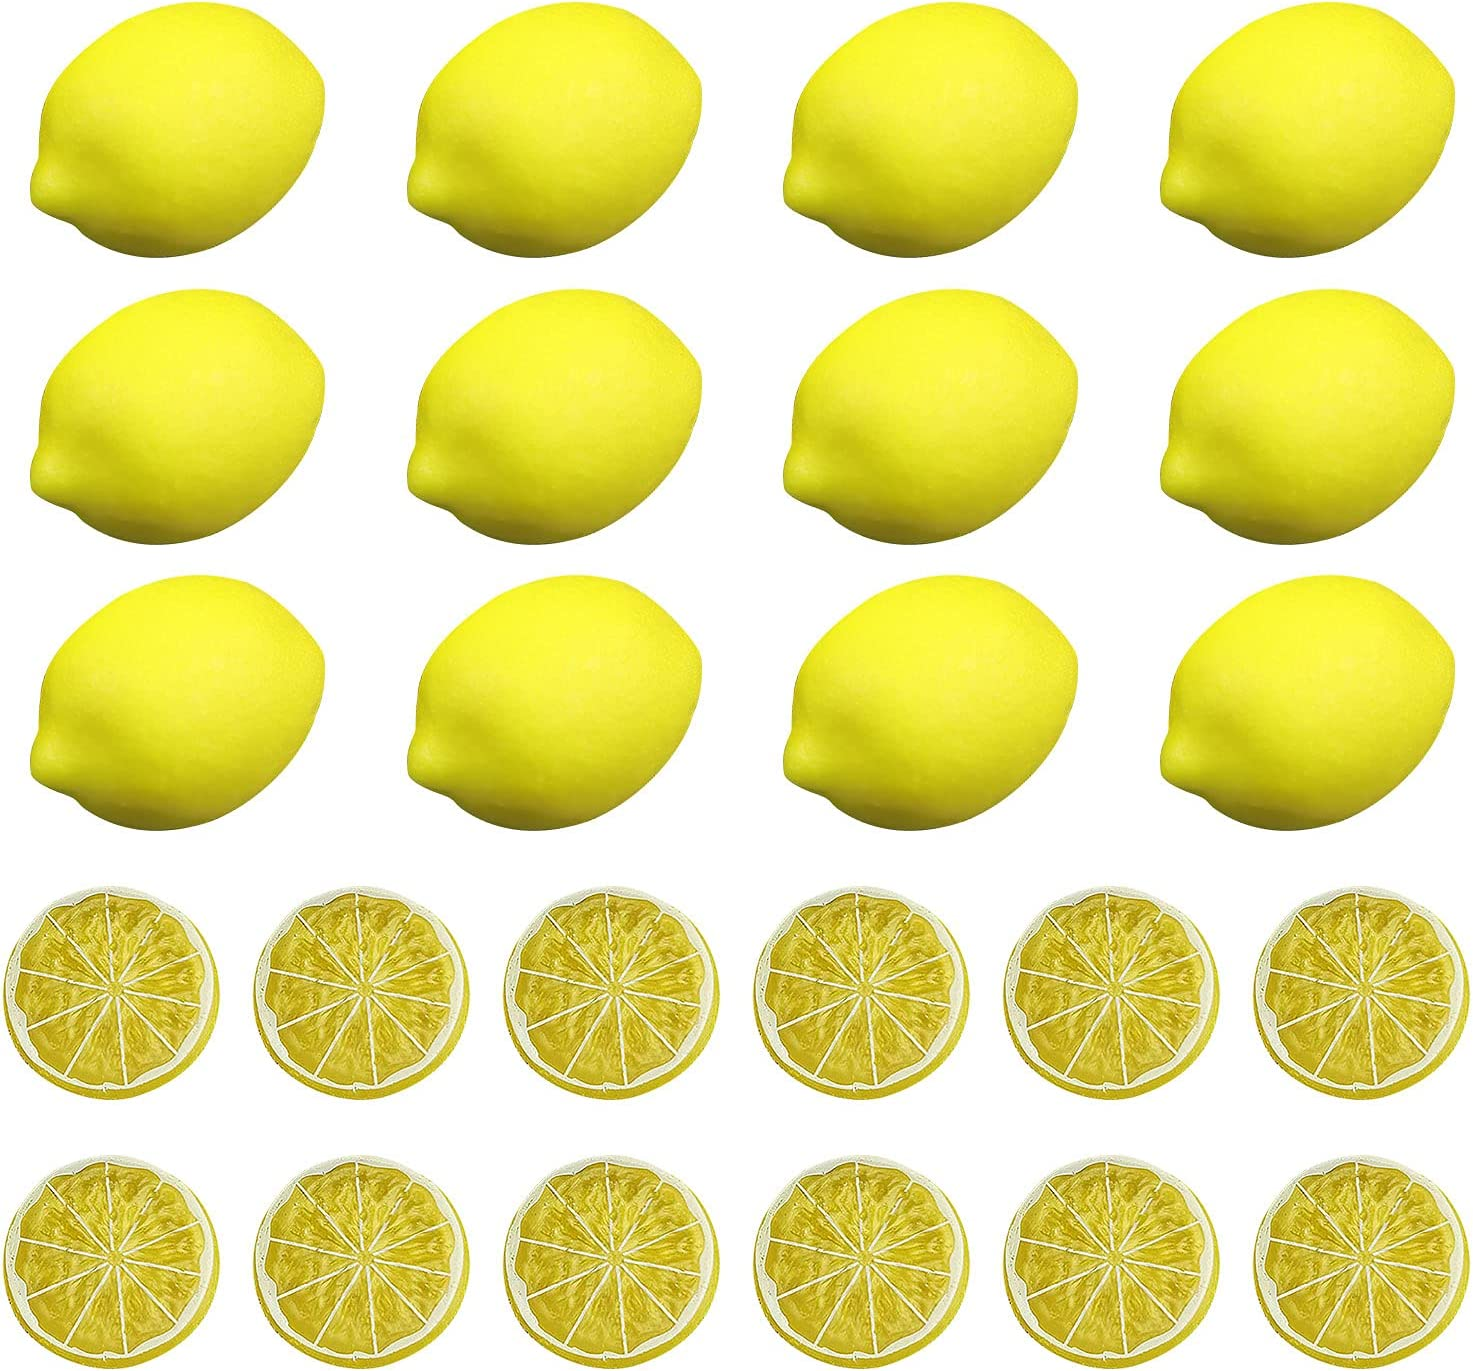 Londegeri Faux Max 69% OFF Yellow Lemons Fake Lif Artificial Ranking integrated 1st place Fruits